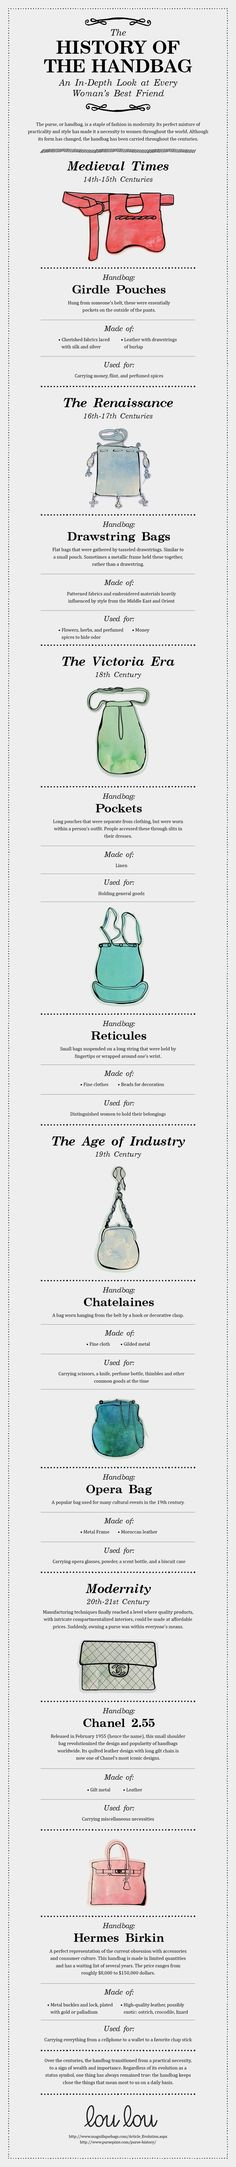 Unique Infographic Design, The History Of The Handbag #Infographic #Design (http://www.pinterest.com/aldenchong/)